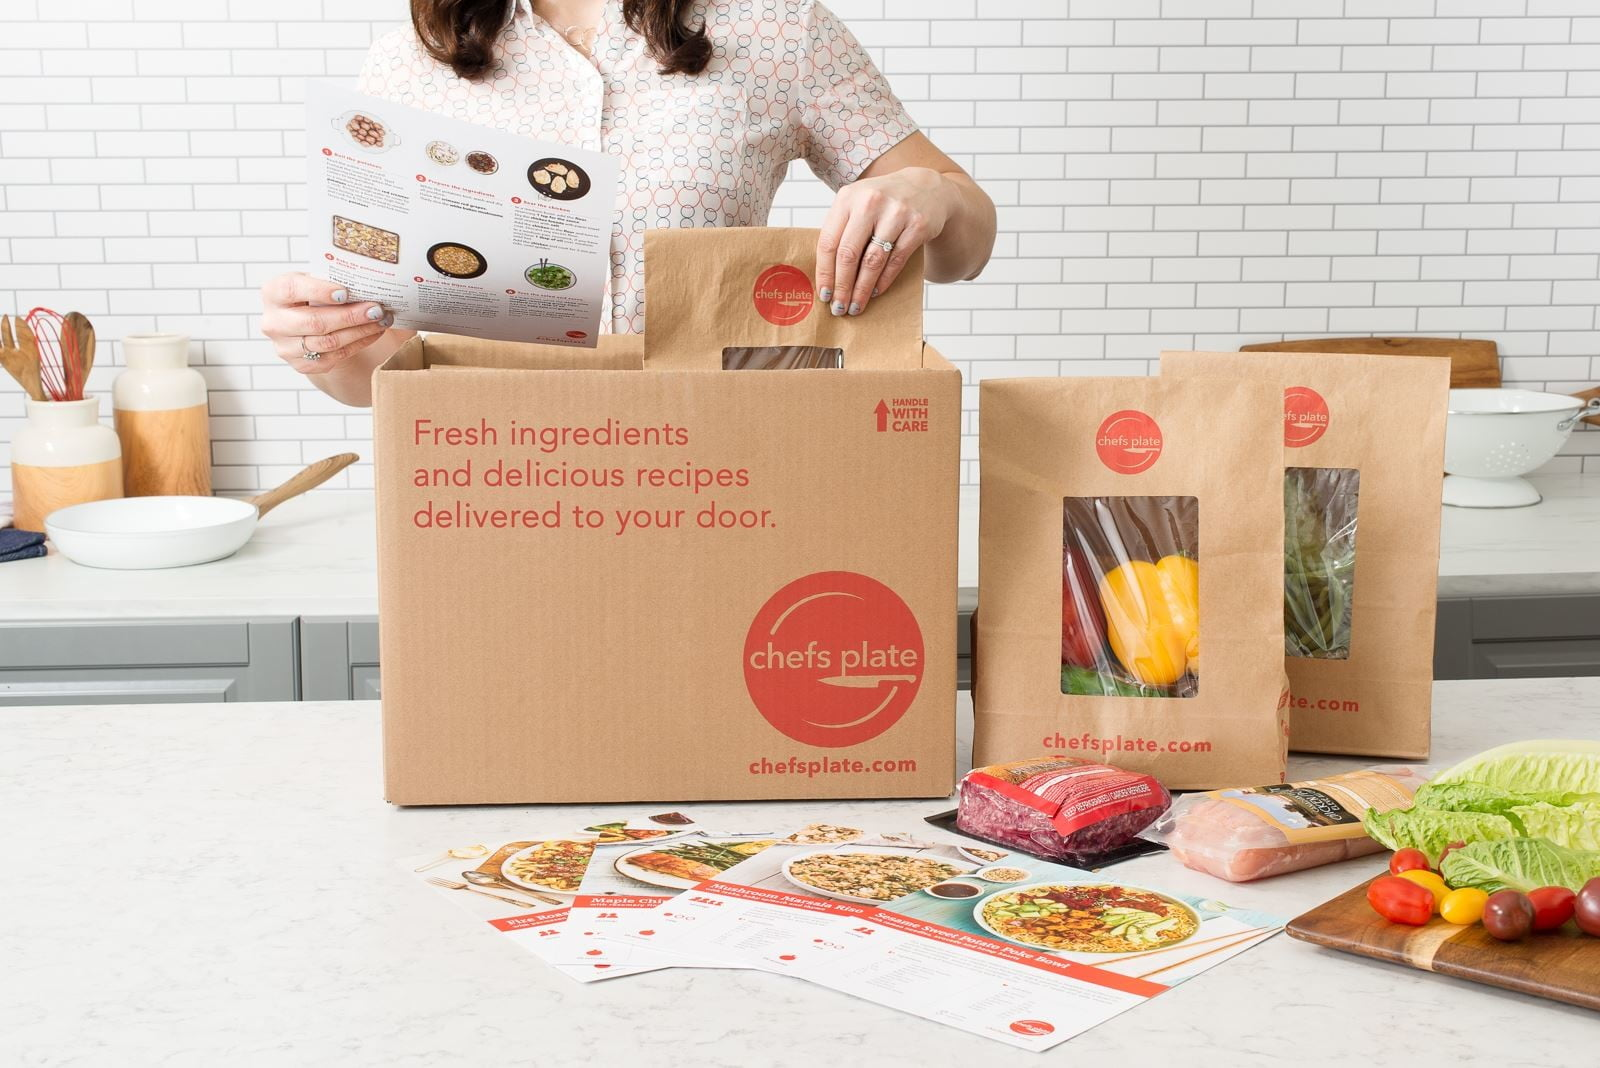 holiday subscription box deals for last minute gifts chefs plate